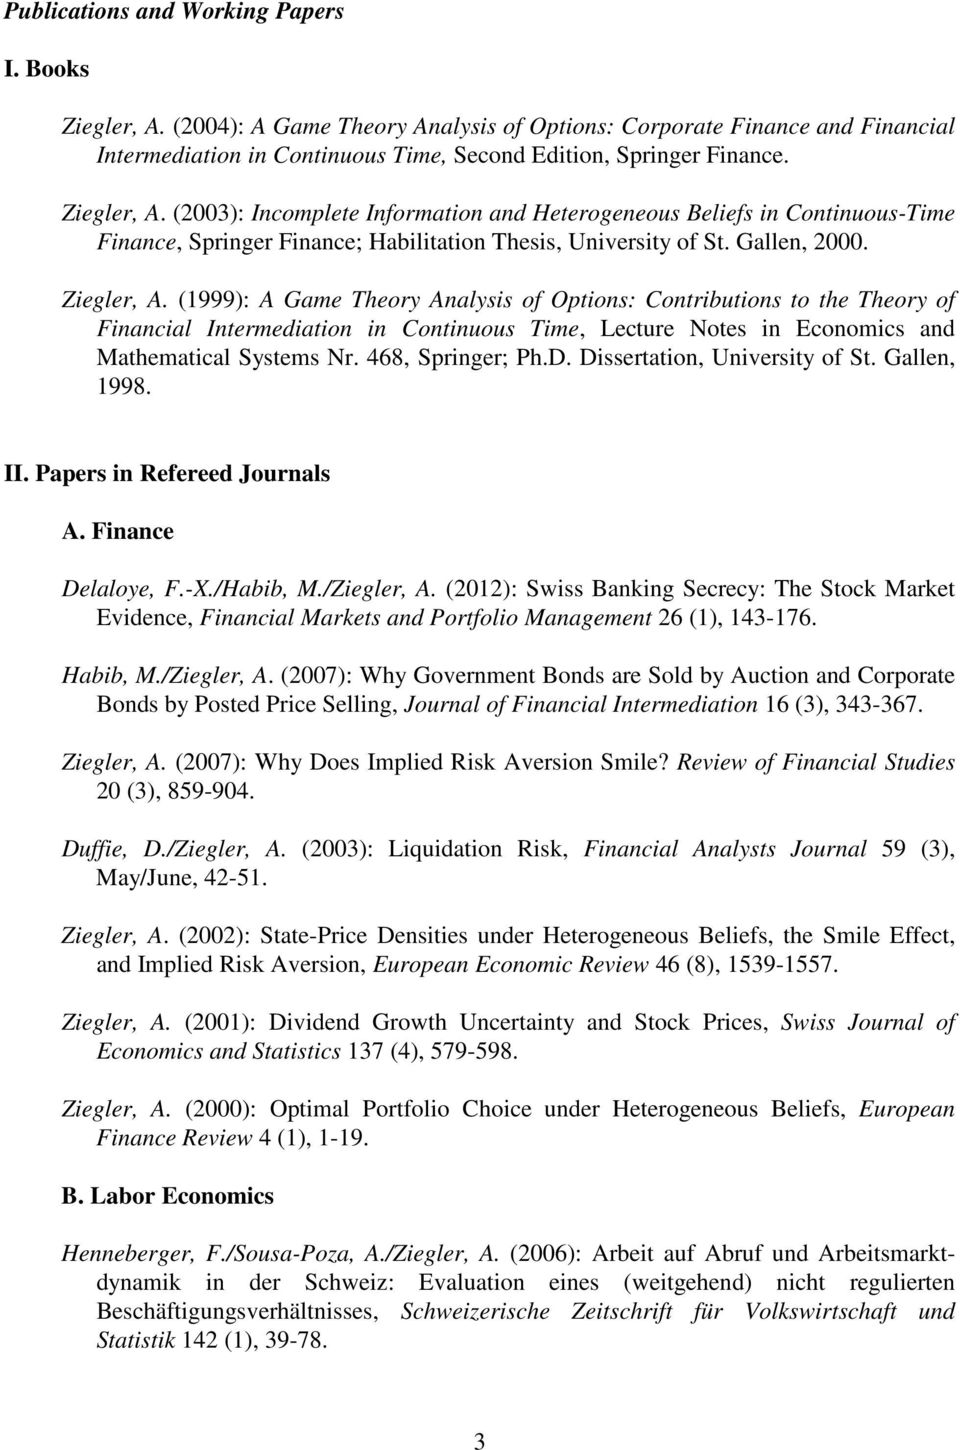 (1999): A Game Theory Analysis of Options: Contributions to the Theory of Financial Intermediation in Continuous Time, Lecture Notes in Economics and Mathematical Systems Nr. 468, Springer; Ph.D.